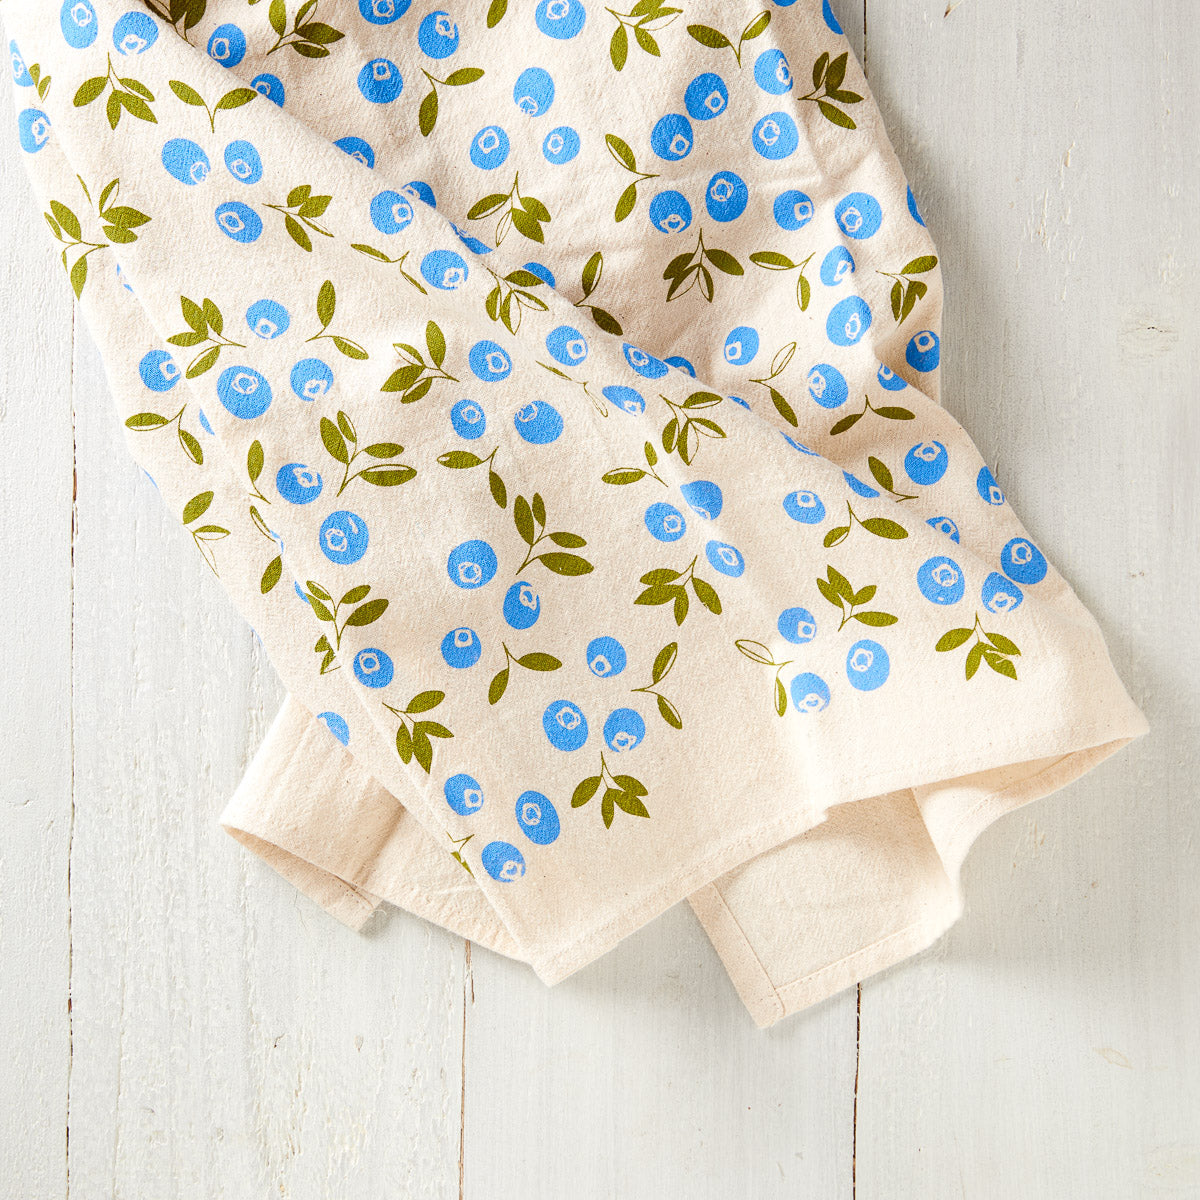 Hand-Printed Blueberry Towel